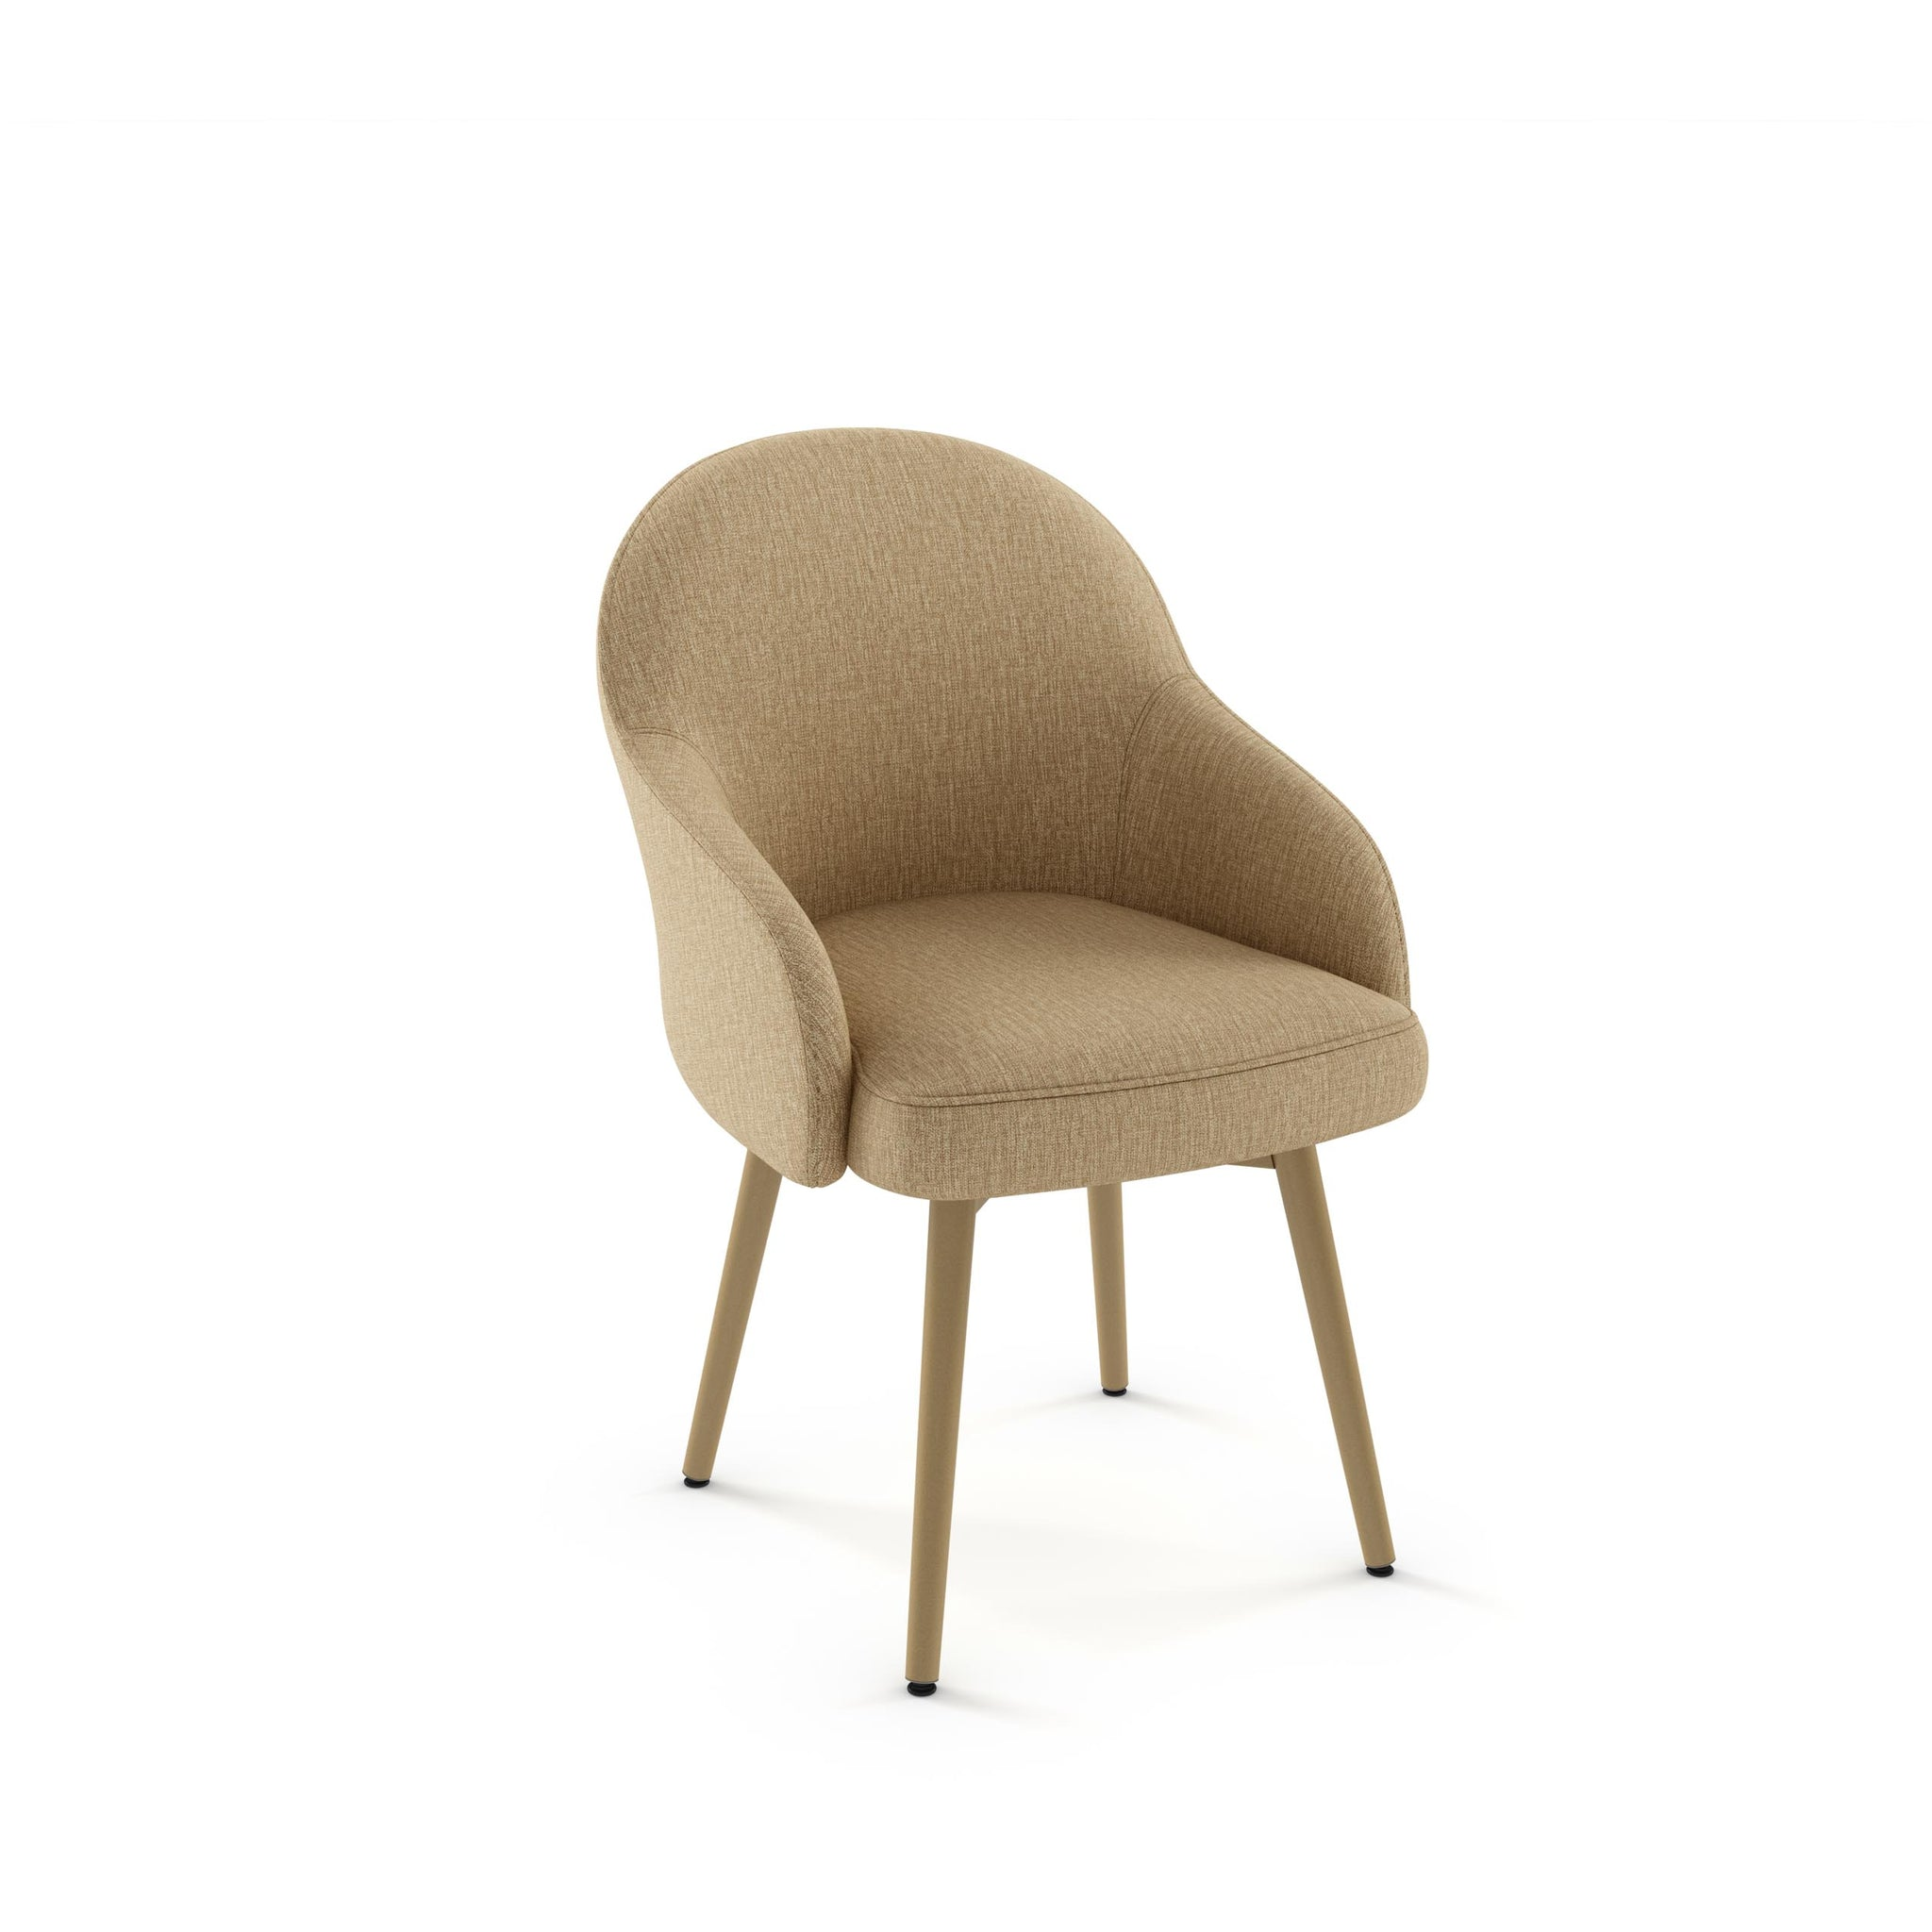 Pleasing Weston Dining Chair Home Interior And Landscaping Ologienasavecom